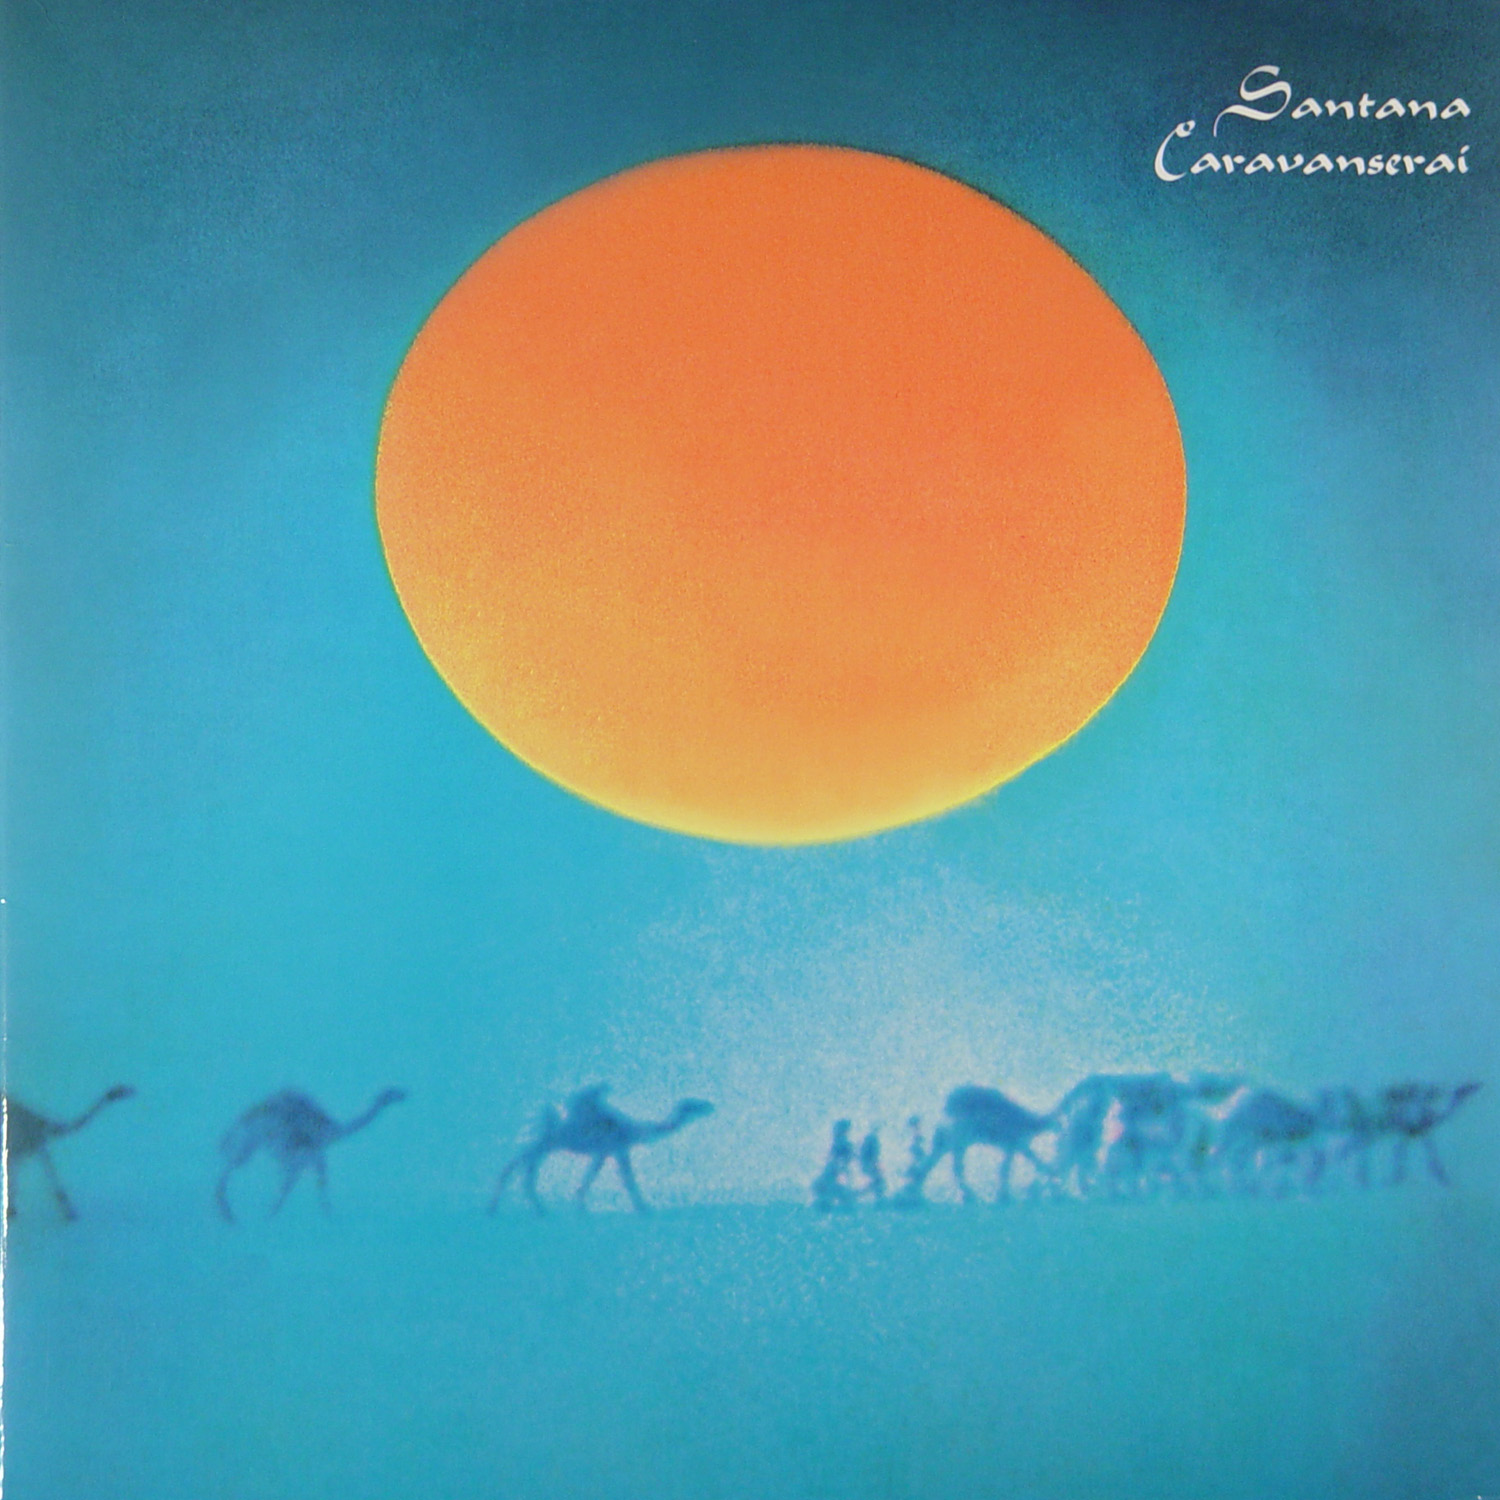 Simple Caravanserai Album For Sale By Santana Was Released Sep 30, 2003 On The BMG Label Recorded In 1972 Originally Released On Columbia 31610 Includes Liner Notes By Hal Miller Though There Were Hints Of Jazz Fusion On Santanas